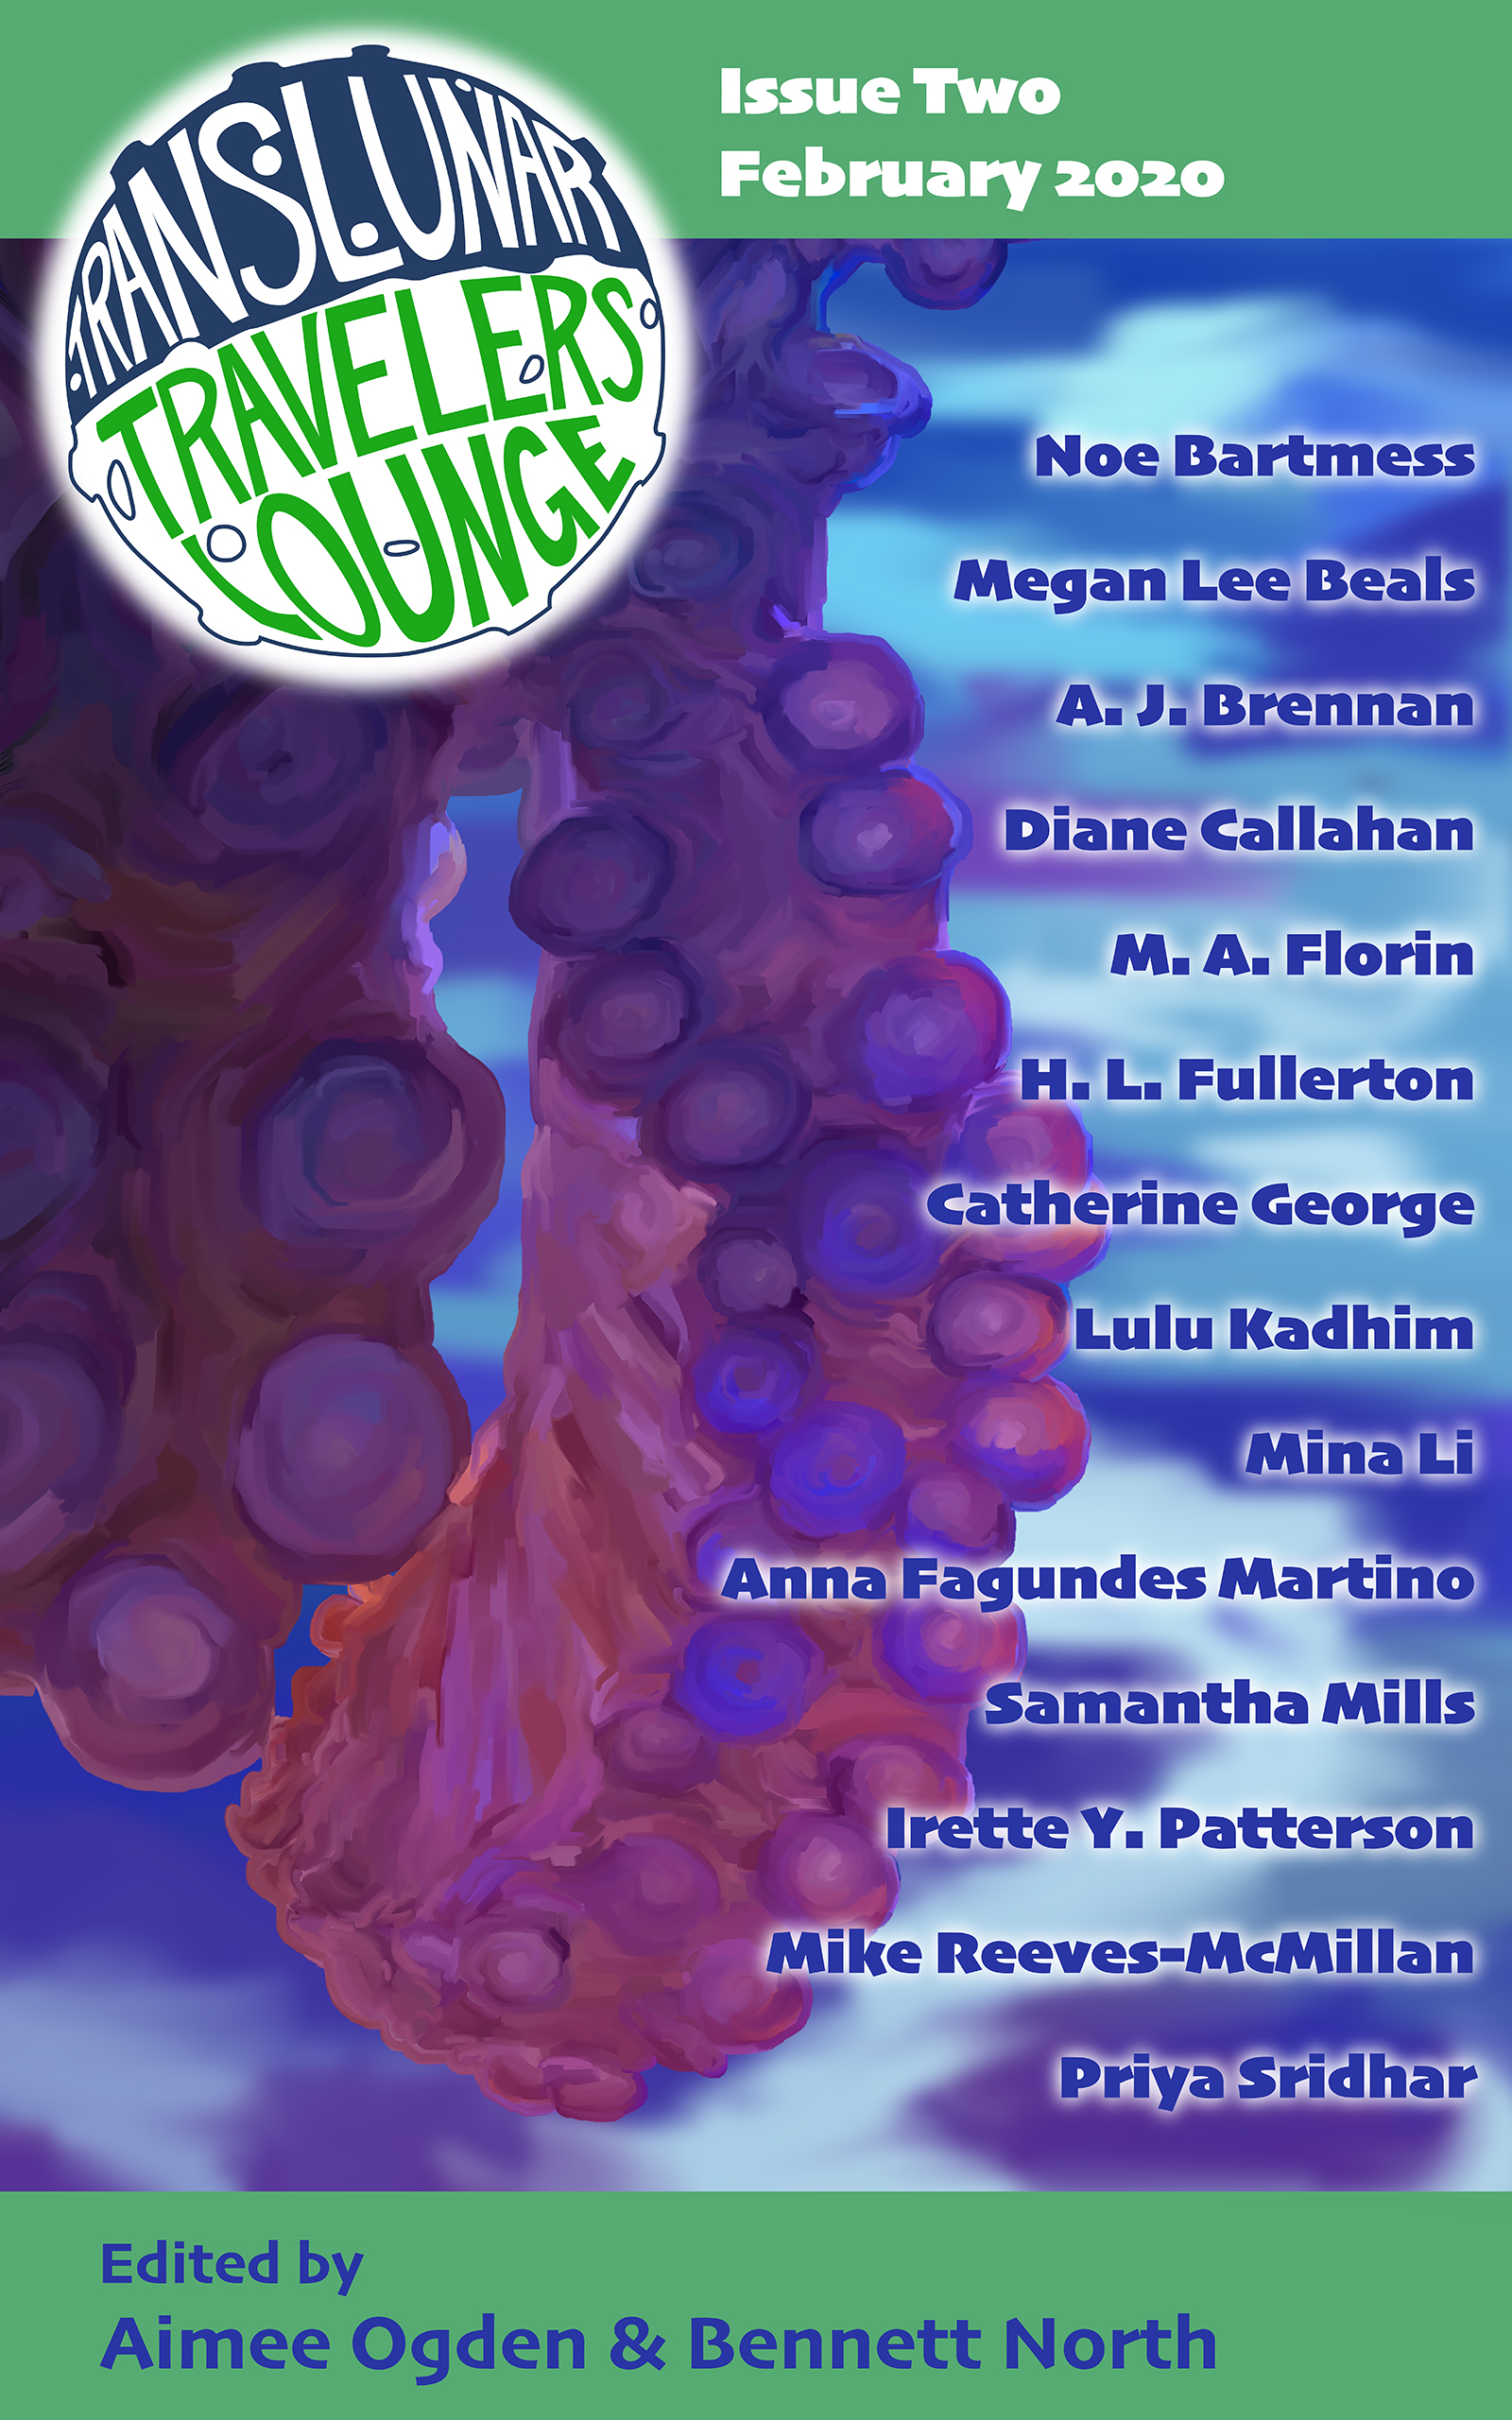 The cover of Translunar Travelers Lounge Issue 2, February 2020. It includes the purple and blue tentacles of an octopus, along with the names of the fourteen authors.